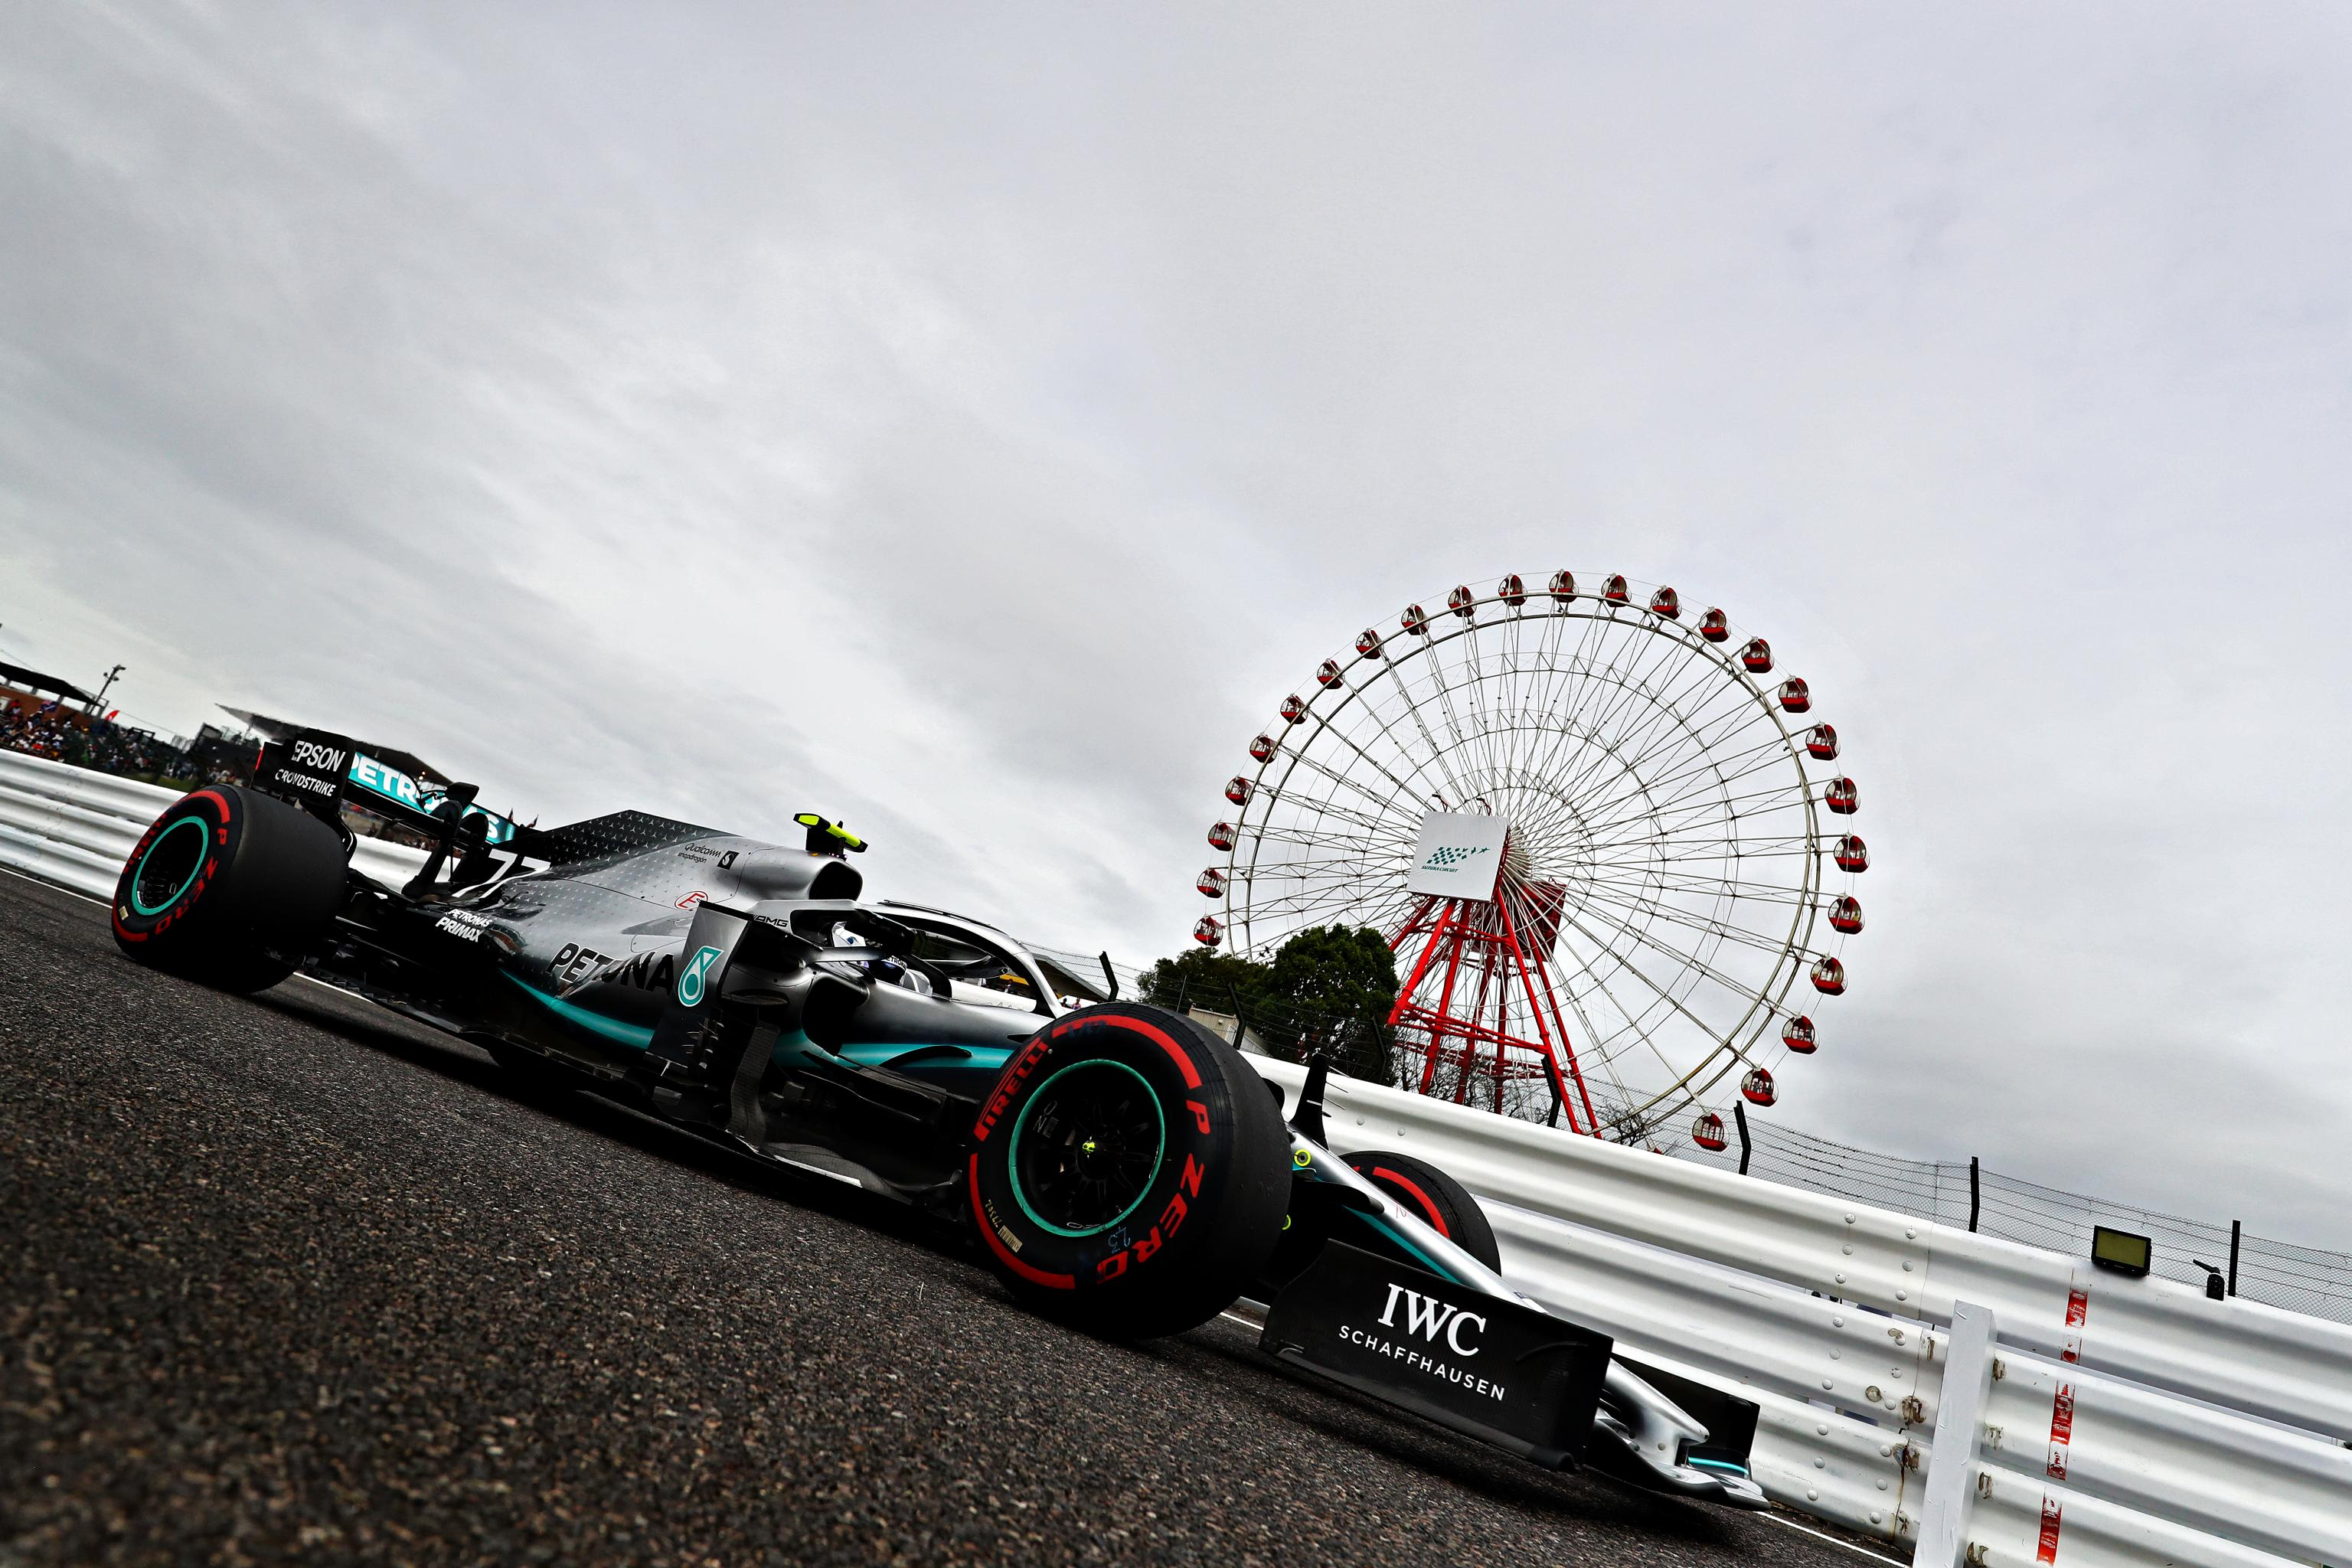 Japanese F1 Grand Prix 2019 Start Time Drivers Tv Schedule And More Bleacher Report Latest News Videos And Highlights